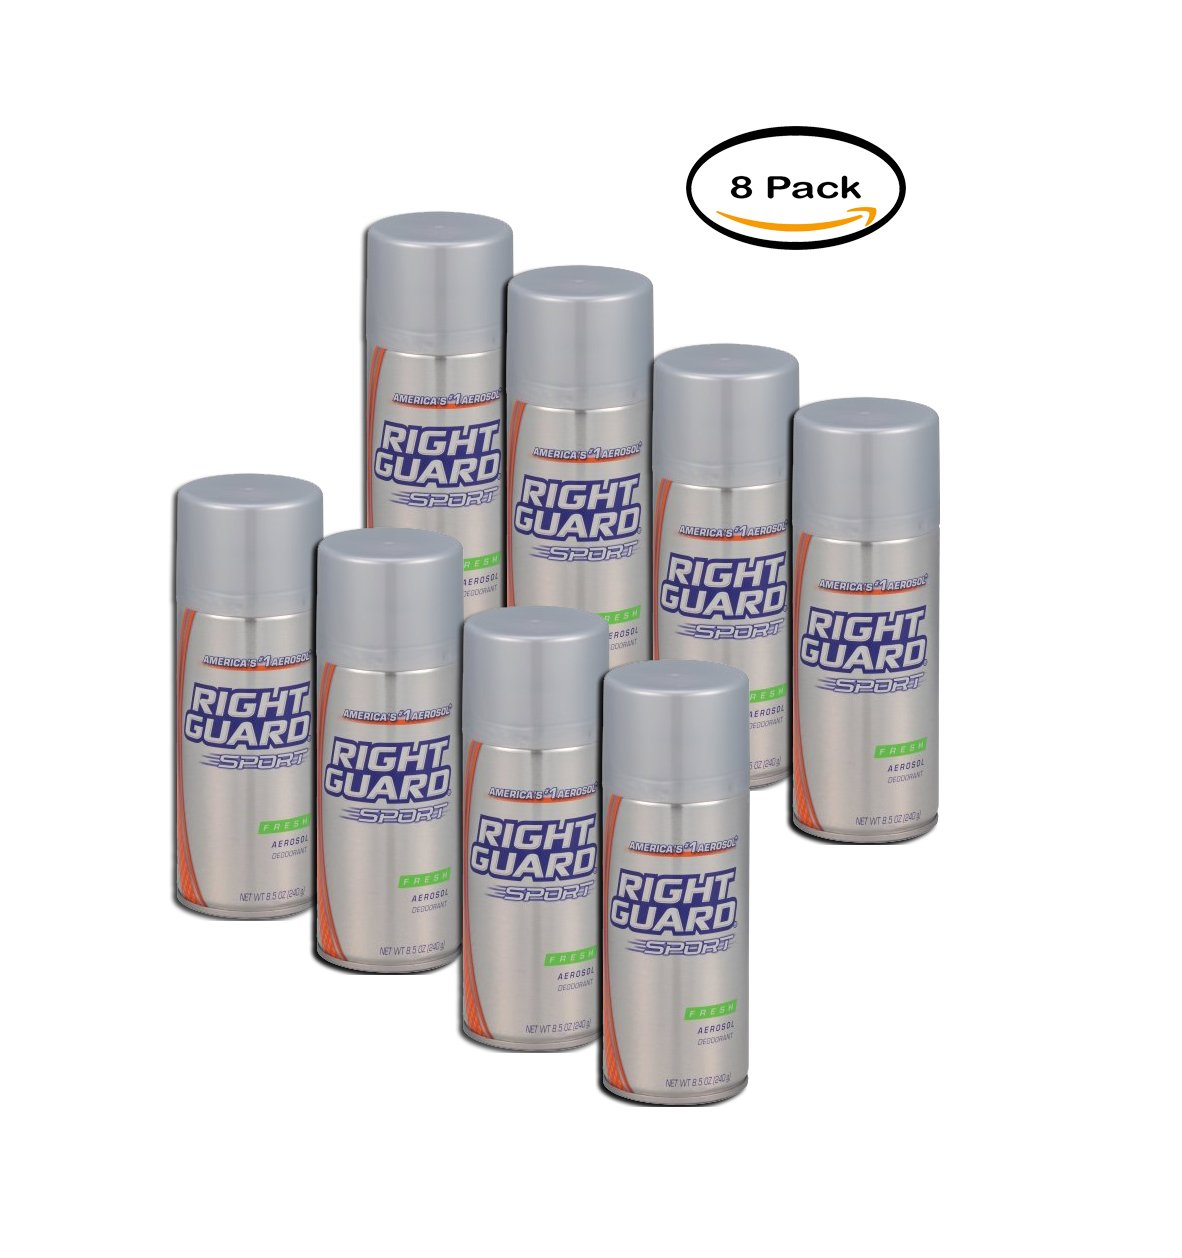 PACK OF 8 - Right Guard Sport Deodorant Aerosol Spray, Fresh, 8.5 Oz